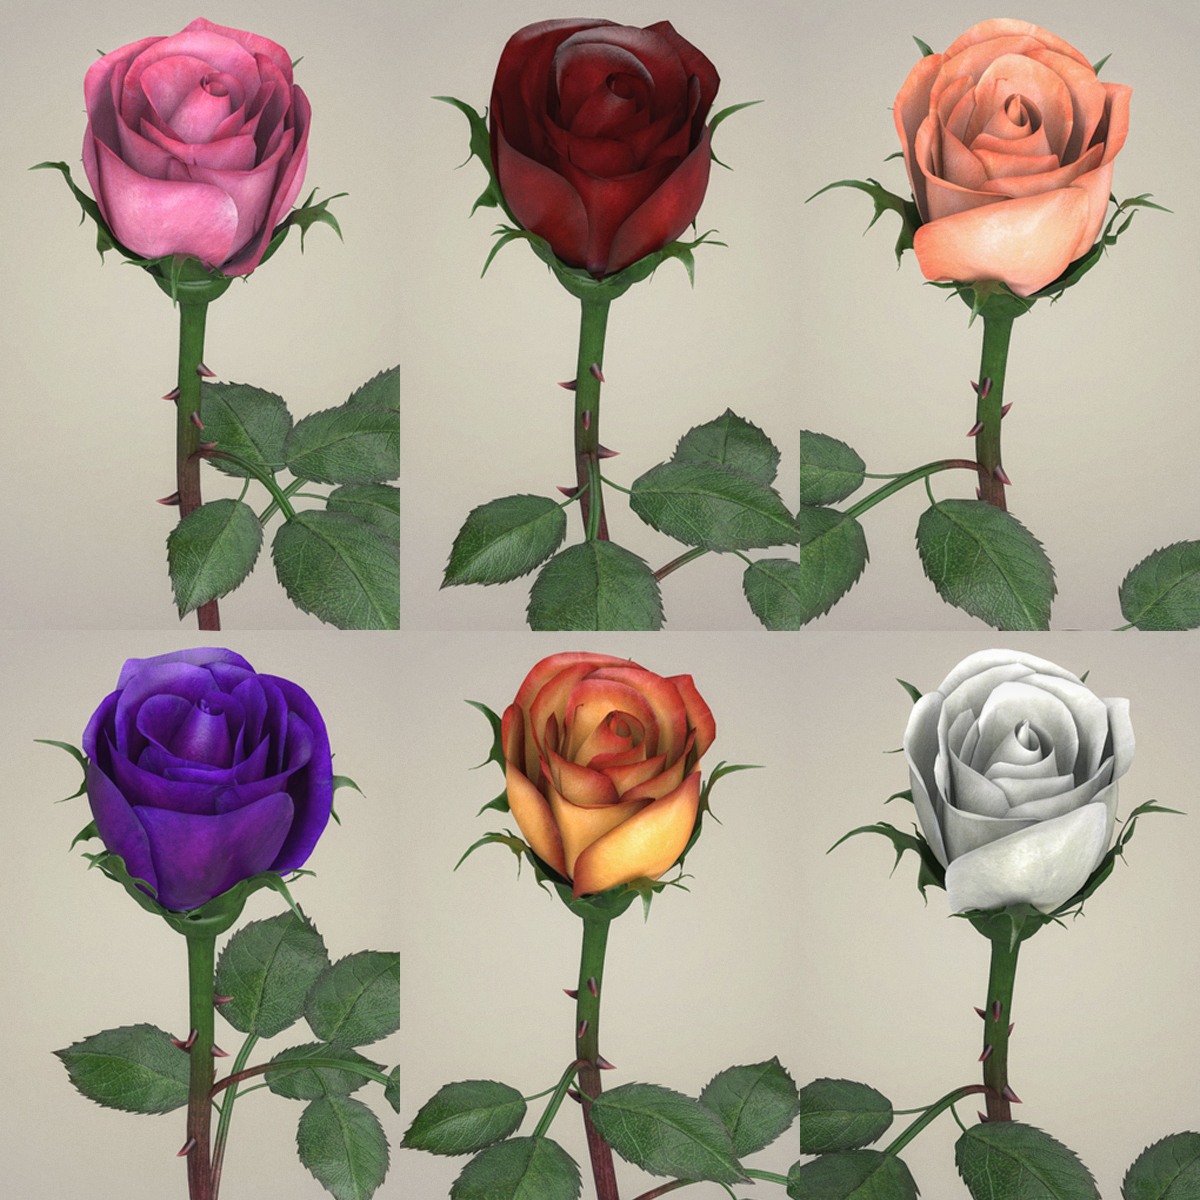 rose flower collection 3d model max fbx c4d ma mb obj 252759